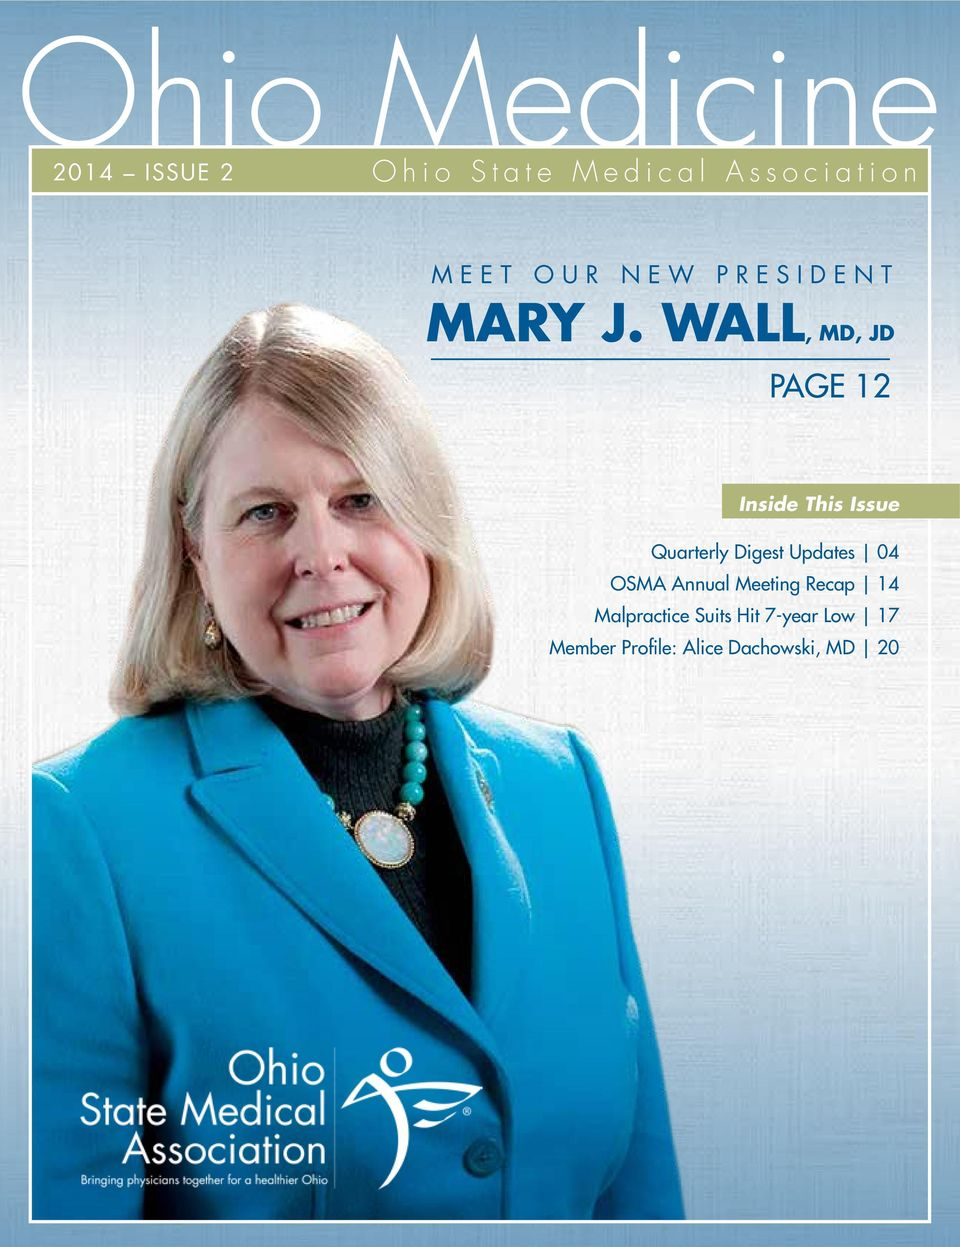 WALL, MD, JD PAGE 12 Inside This Issue Quarterly Digest Updates